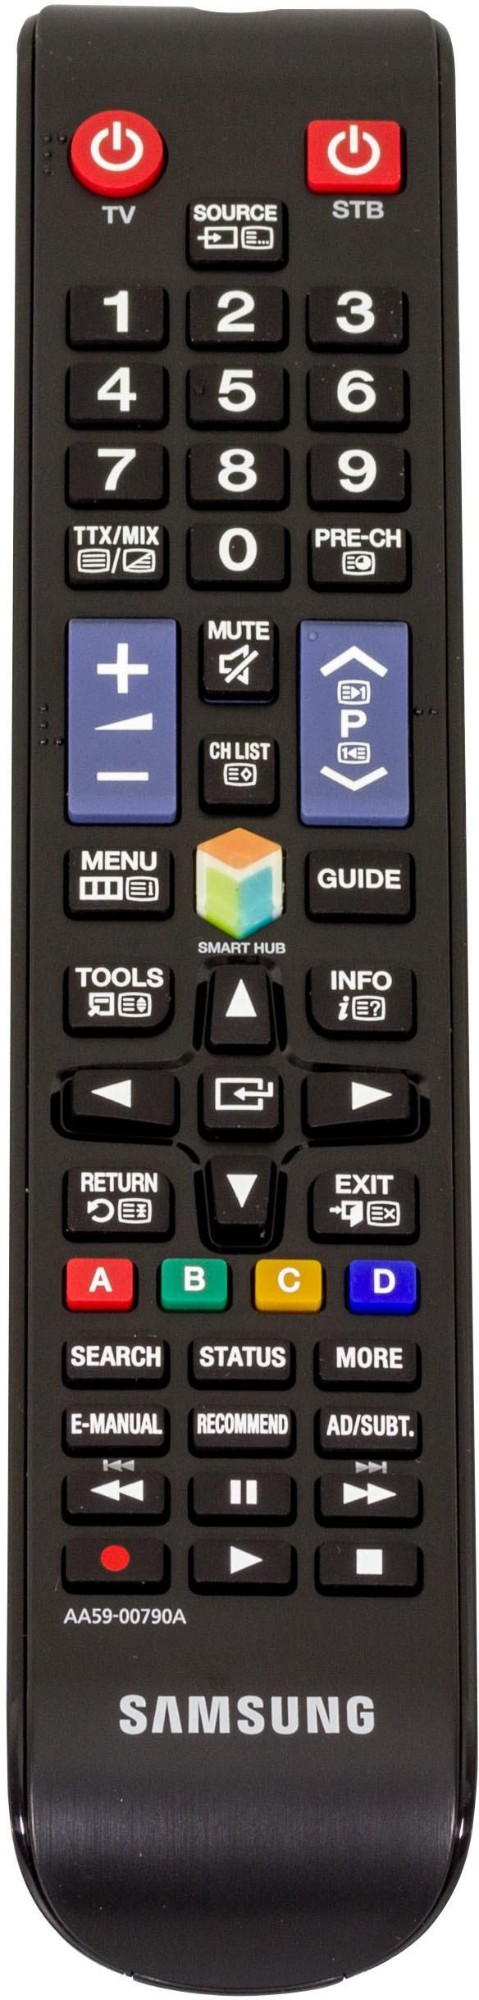 Samsung Remote Control TM1250 - Approx 1-3 working day lead.